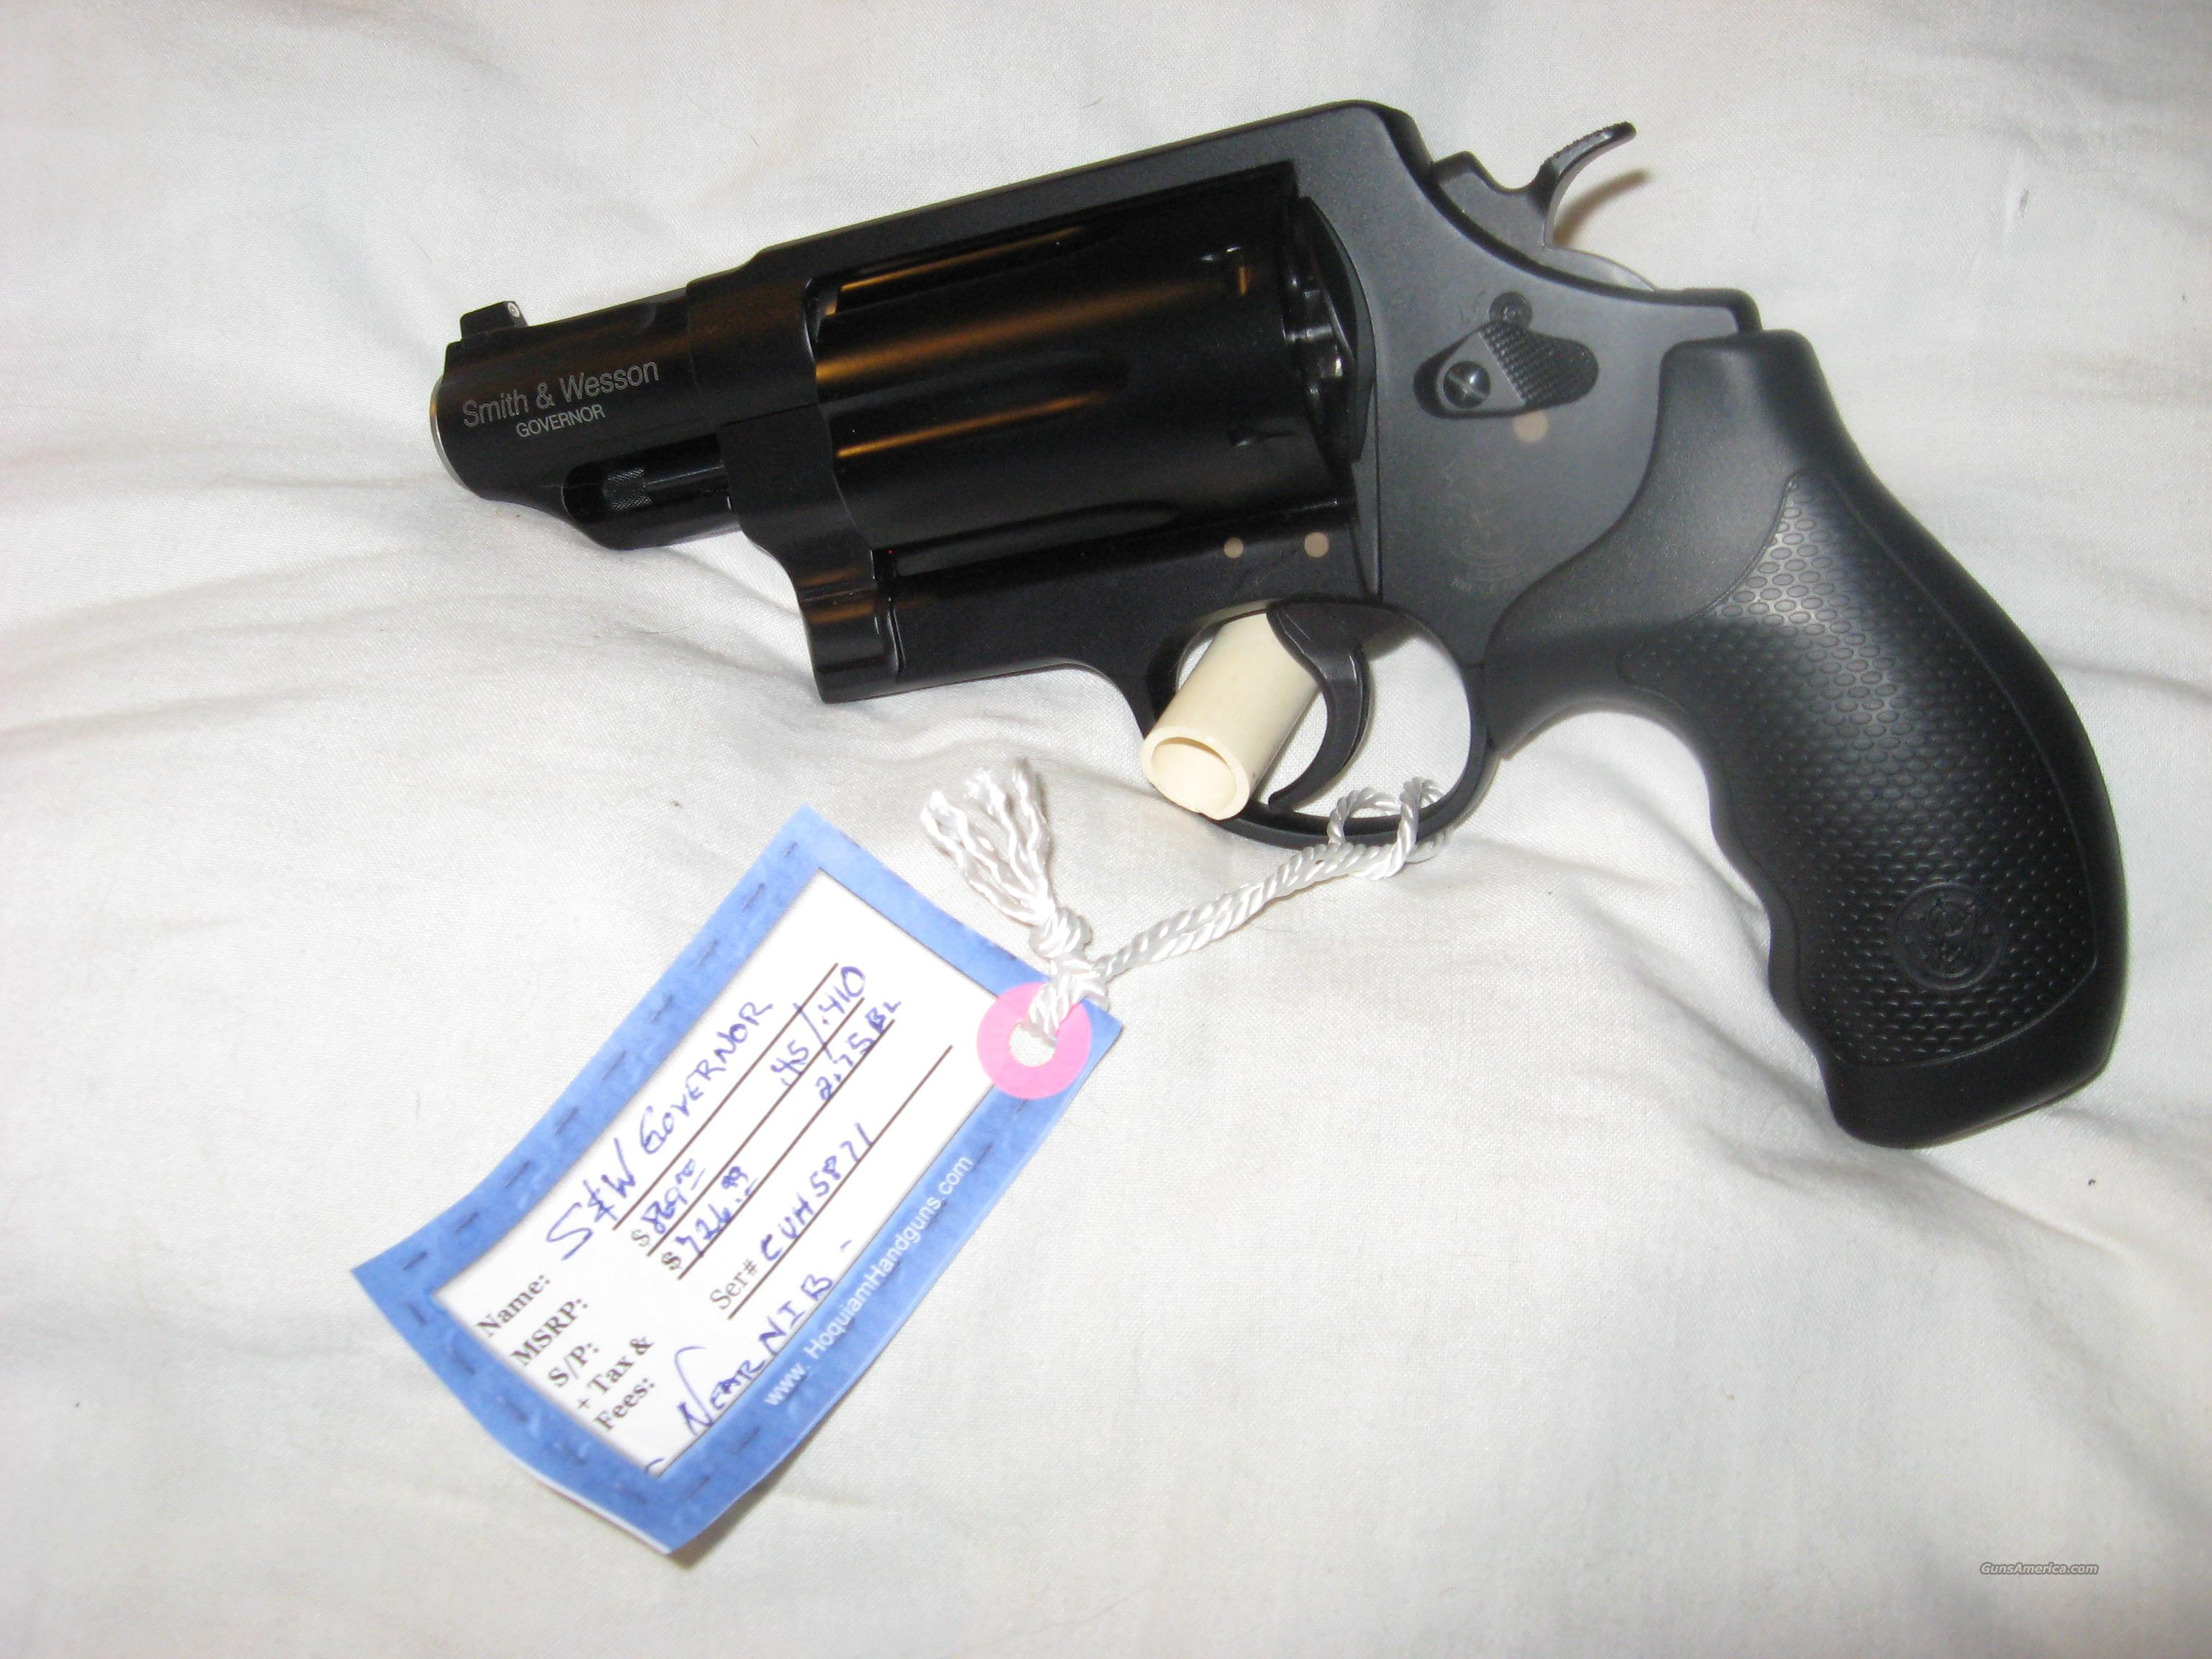 Smith & Wesson Governor  Guns > Pistols > Smith & Wesson Revolvers > Pocket Pistols